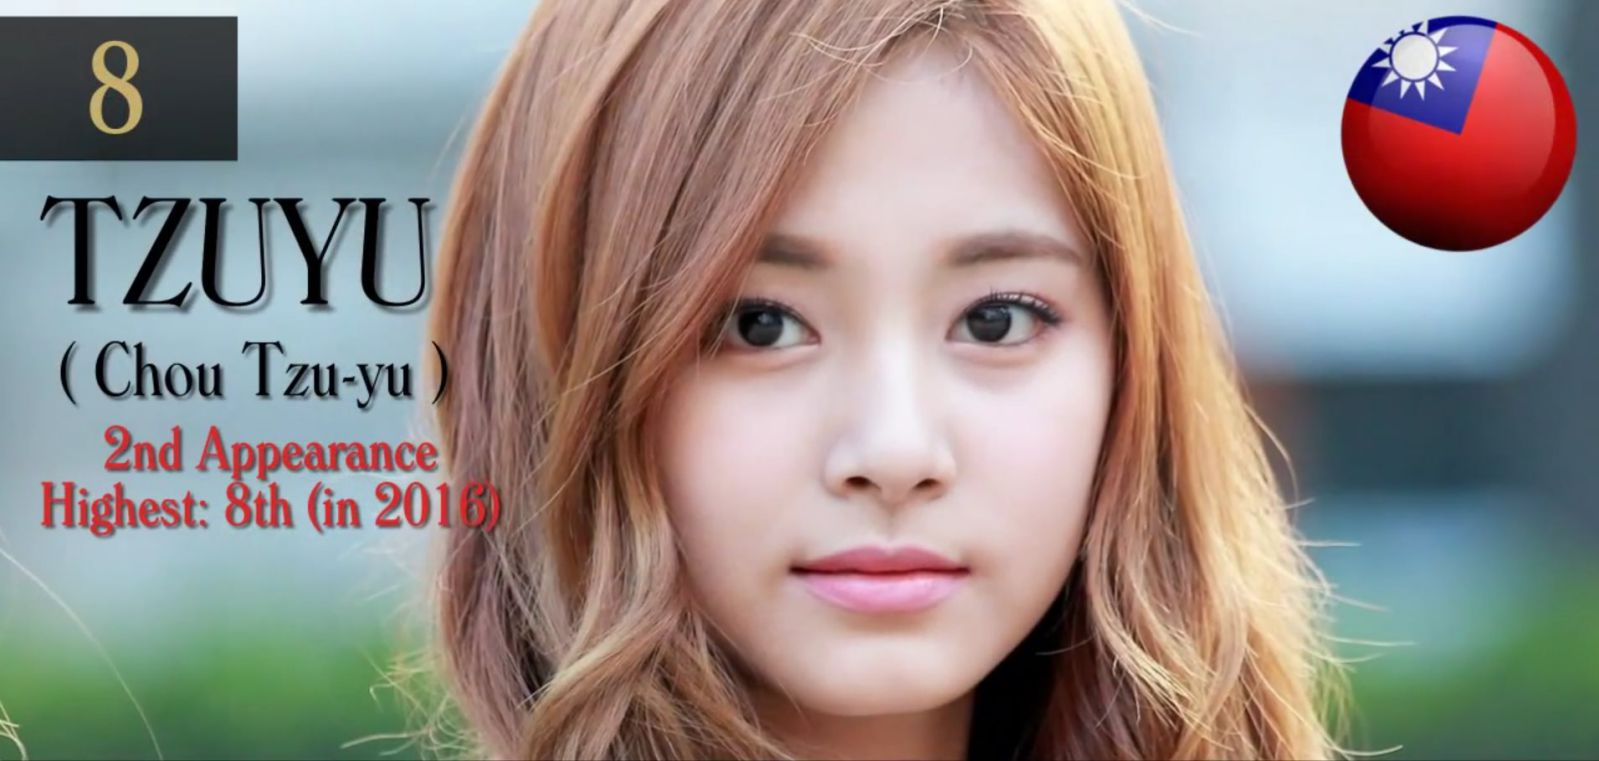 the-100-most-beautiful-faces-2016 (8)s